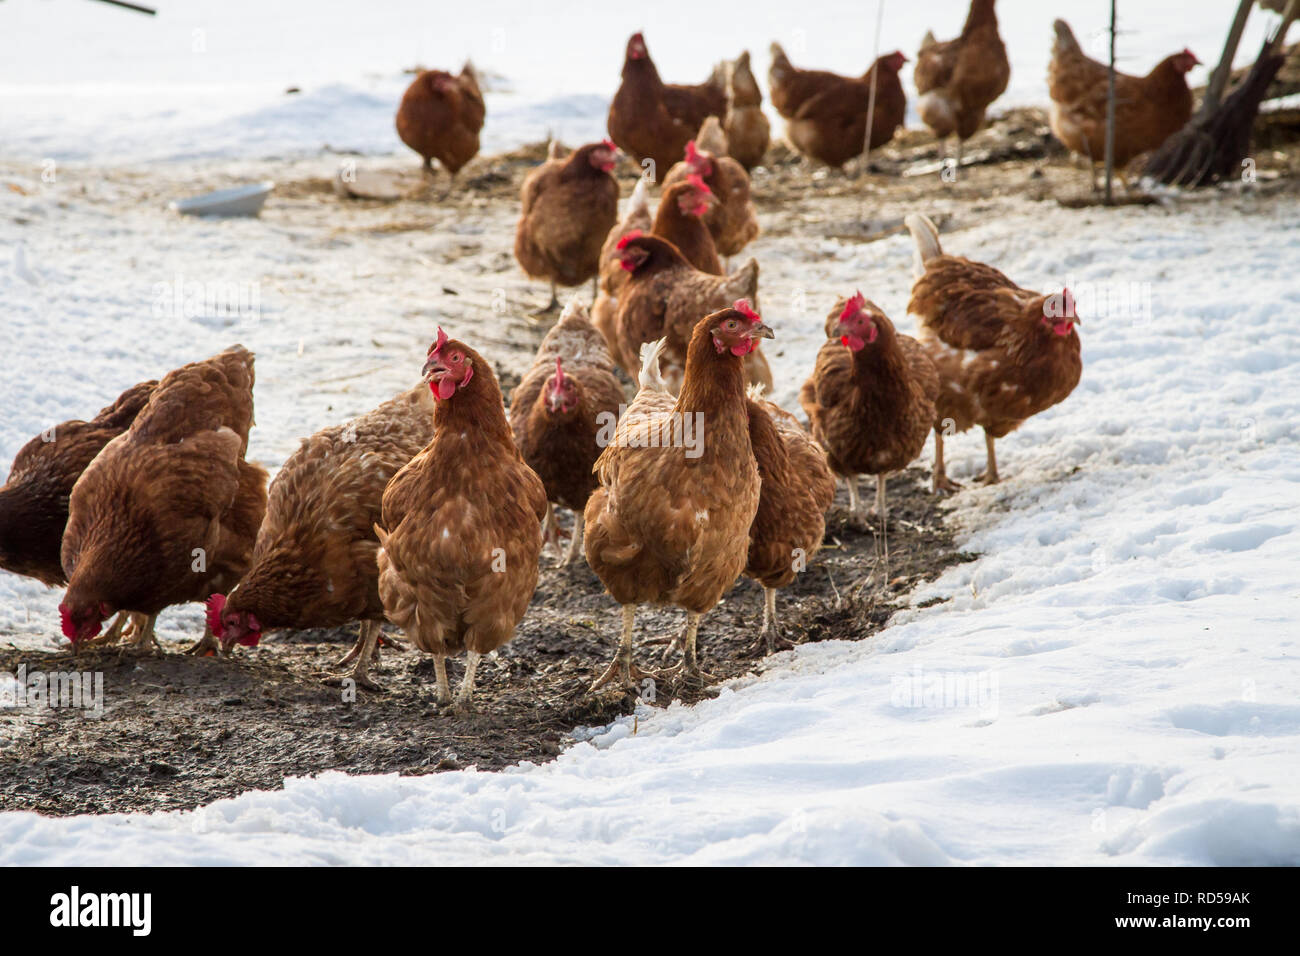 Free-range hens [Gallus gallus domesticus] on a cold winter day, chicken-run covered with snow - Stock Image